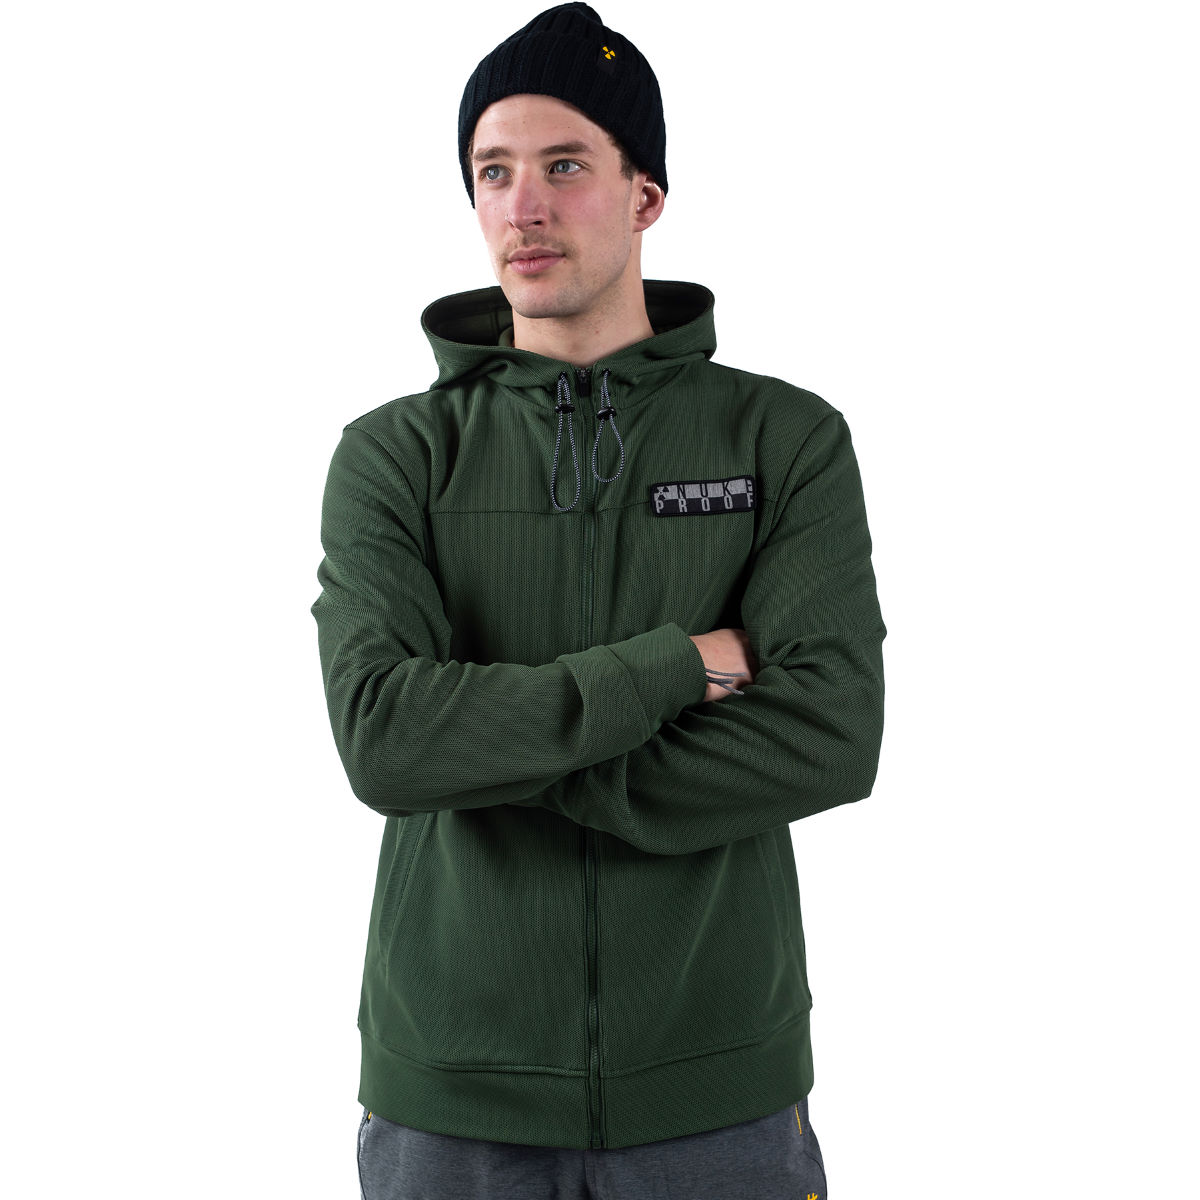 Nukeproof Nukeproof Blackline Full Zip Hoodie   Hoodies